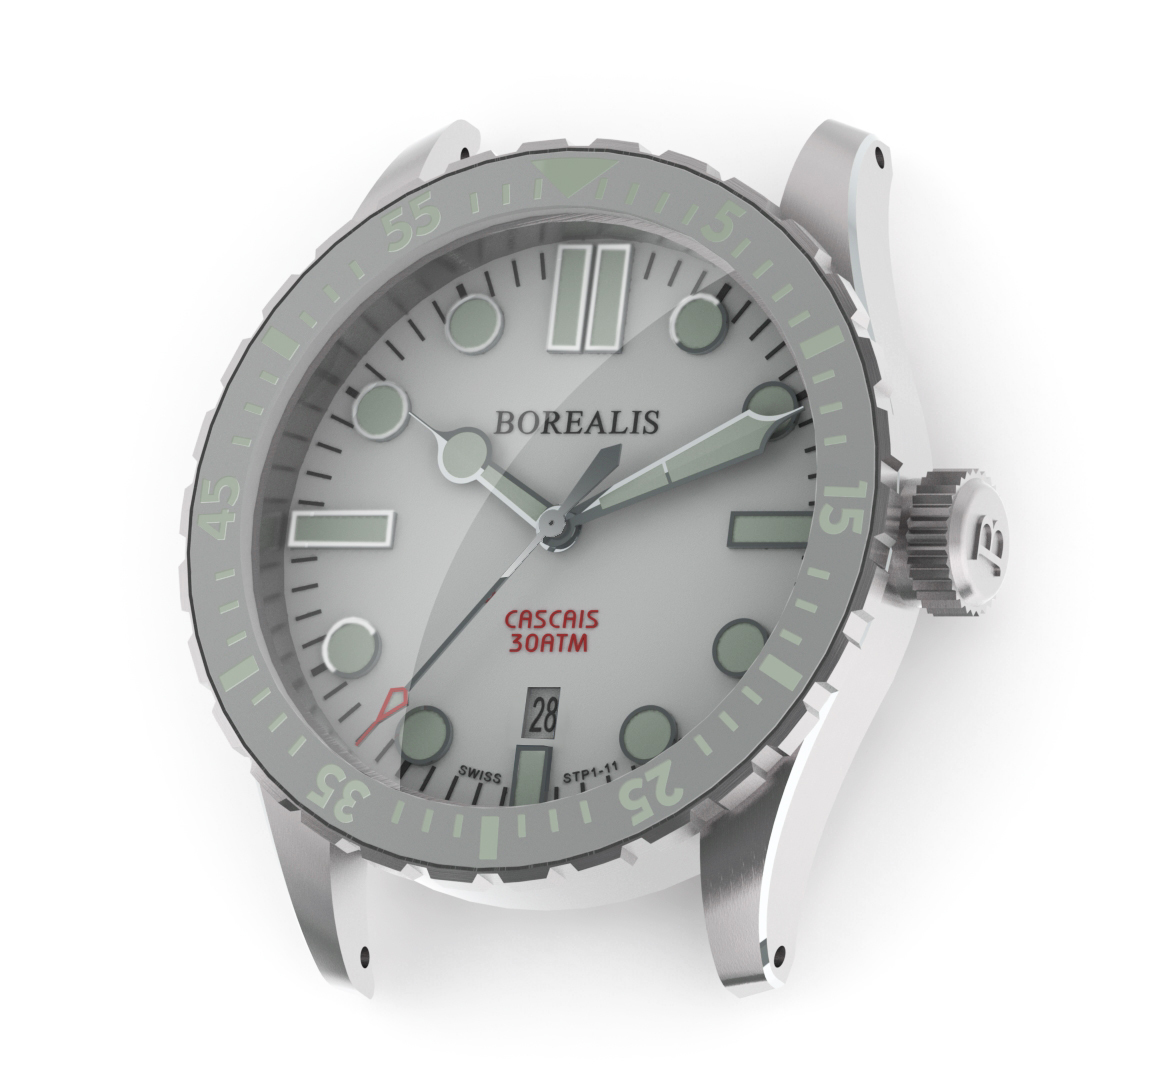 Borealis Cascais White Dial Cathedral Hands Date C3 X1 Lume BCSCWHITEDCHDATE